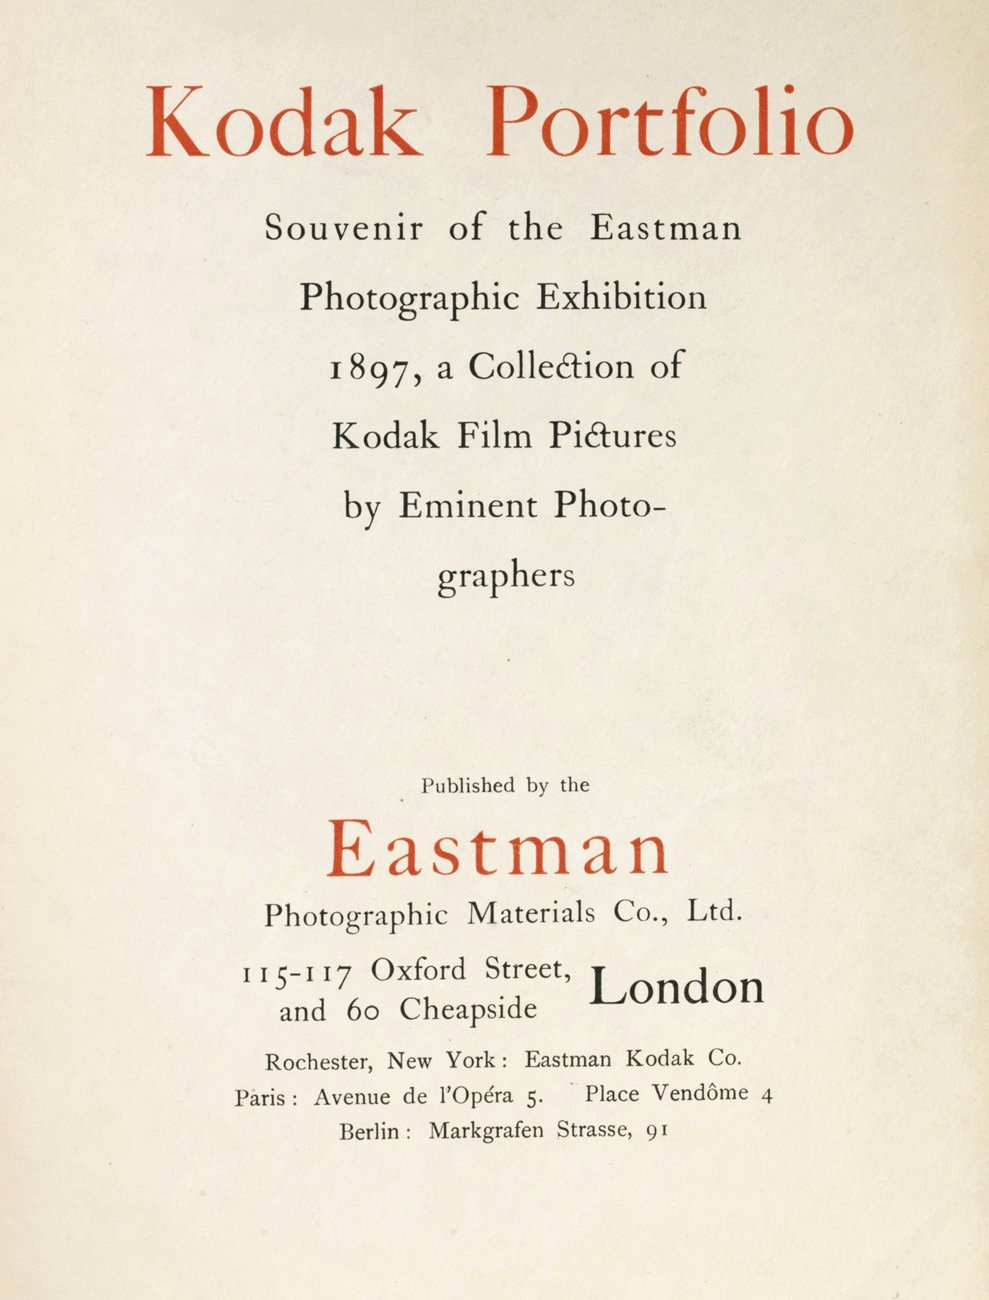 Portfolio Title Page Template Inspirational Kodak Portfolio souvenir Of the Eastman Graphic